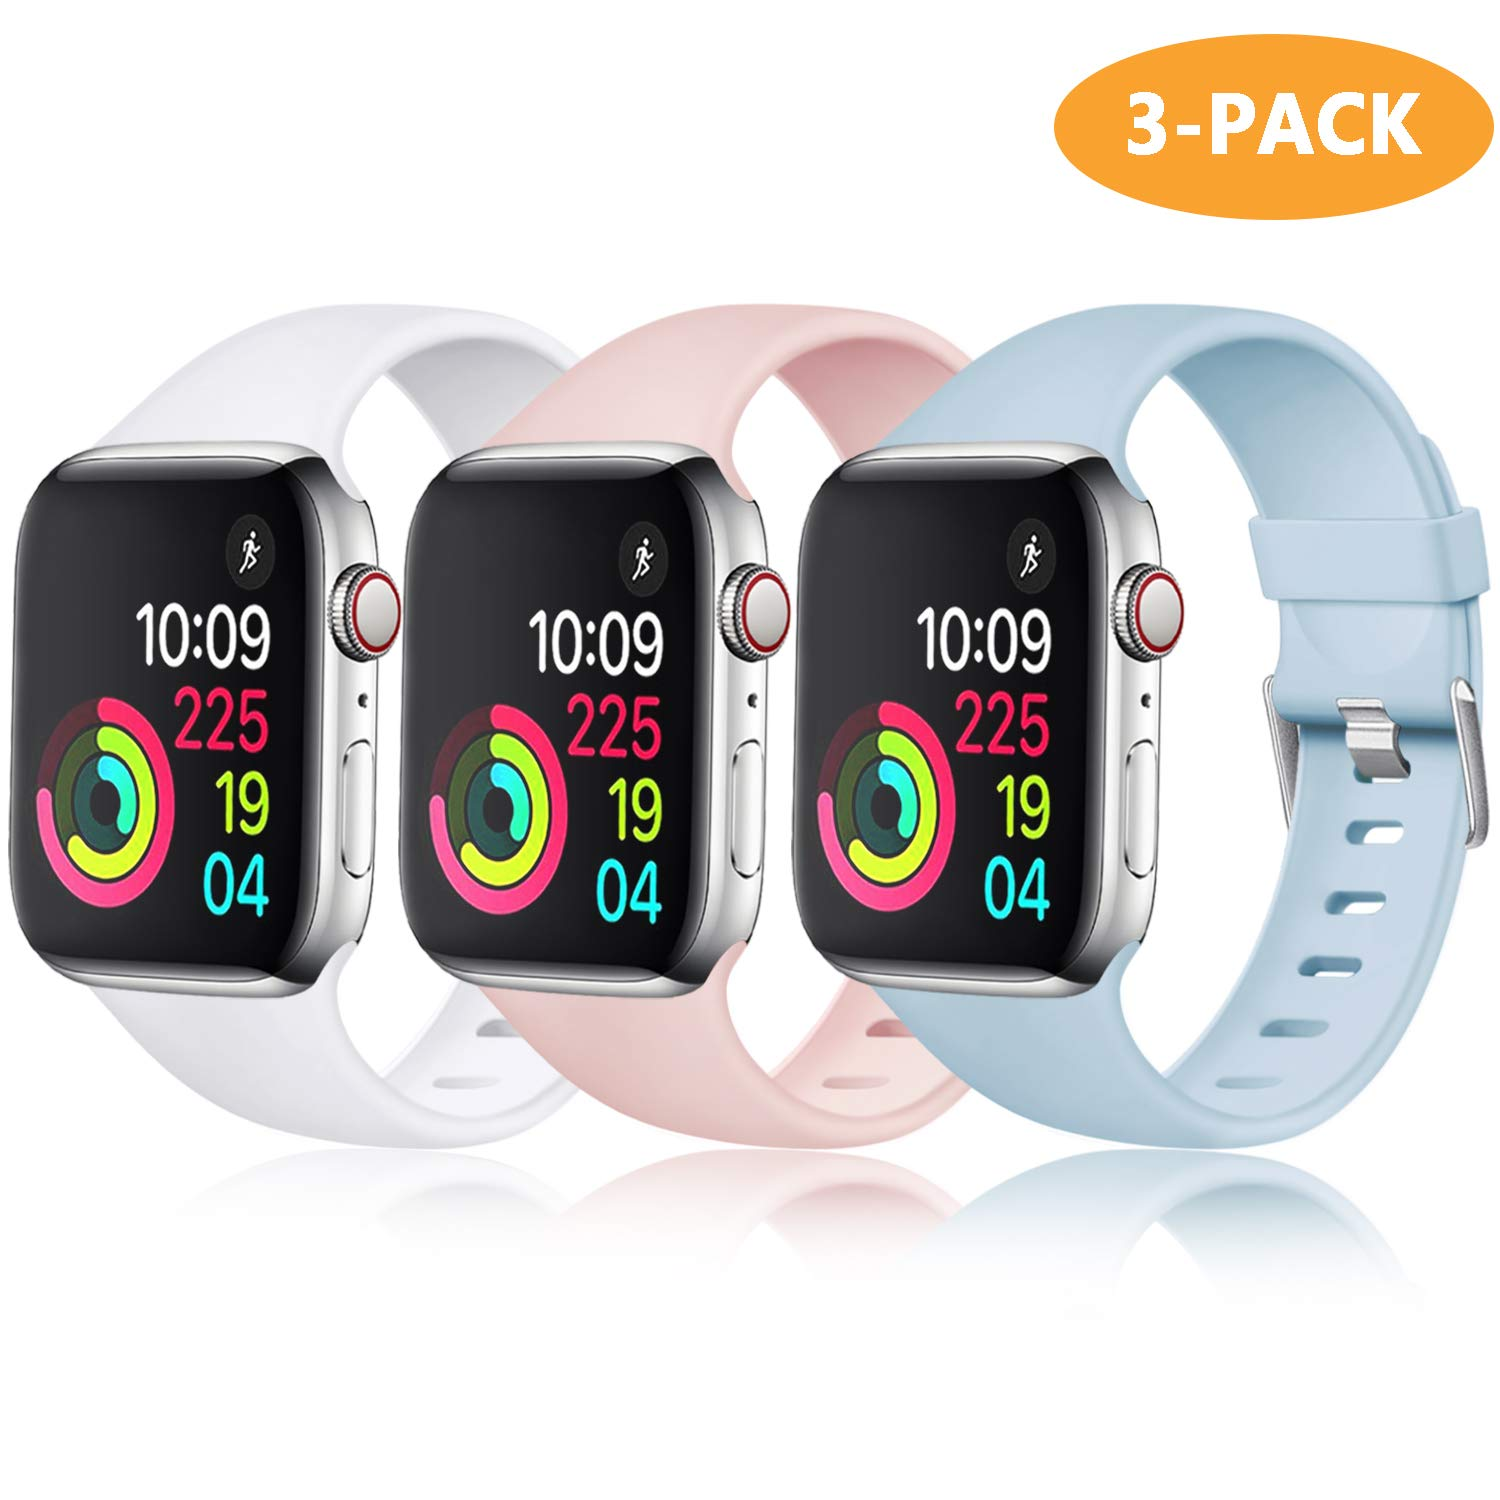 Laffav Compatible with Apple Watch Band 44mm 42mm for Women Men, Turquoise, White, Pink Sand, 3 Pack, M/L by Laffav